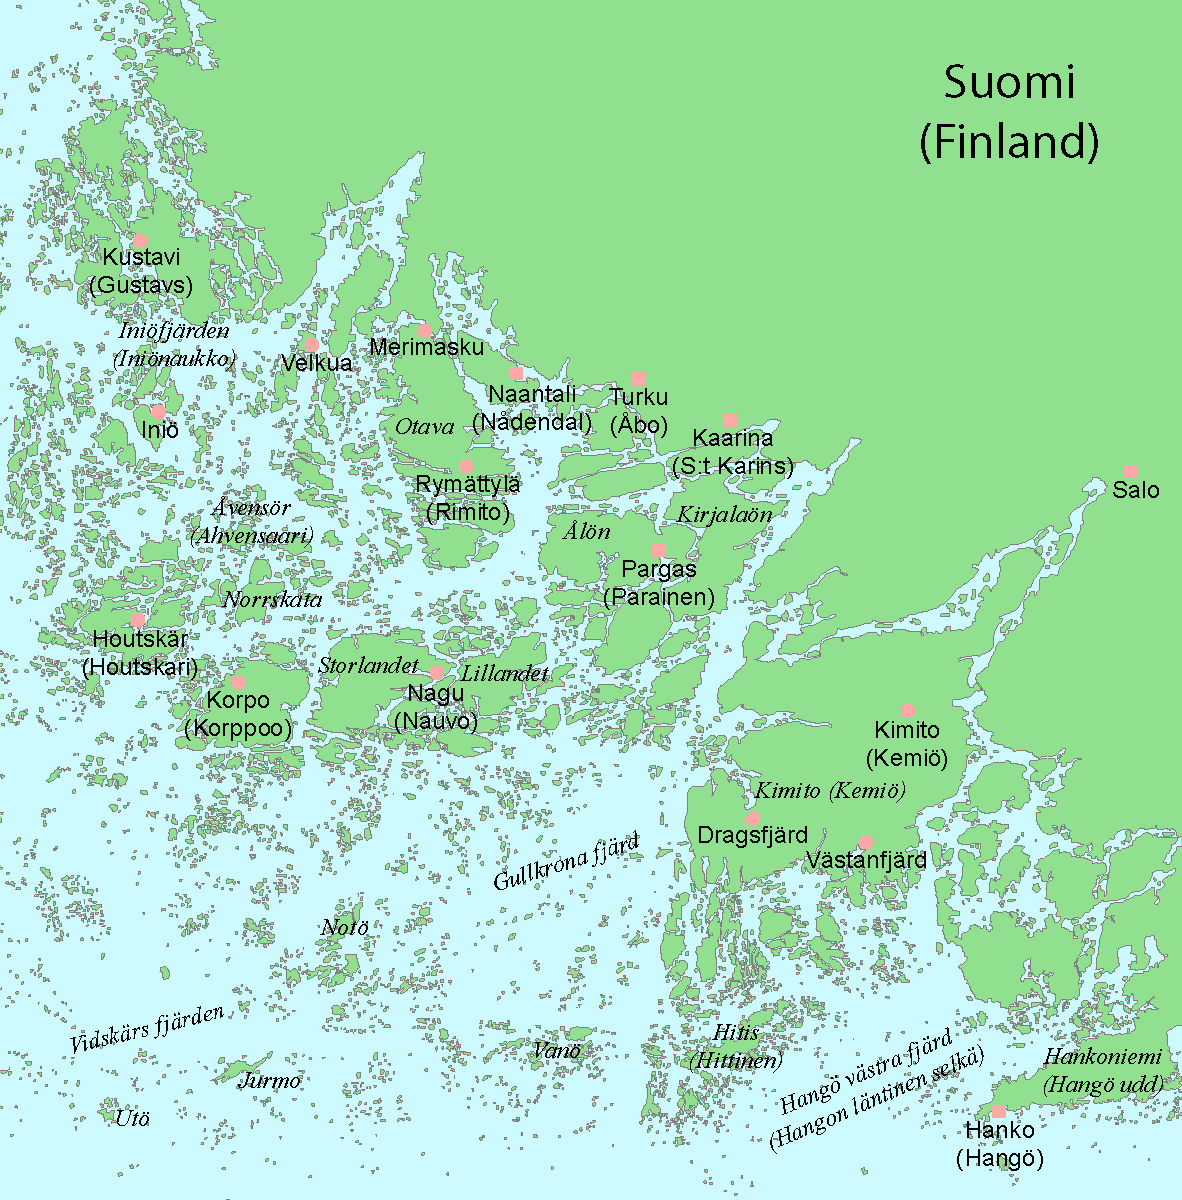 Map Of The Archipelago Sea East Of Åland Island Finland MAPS - Aland islands political map